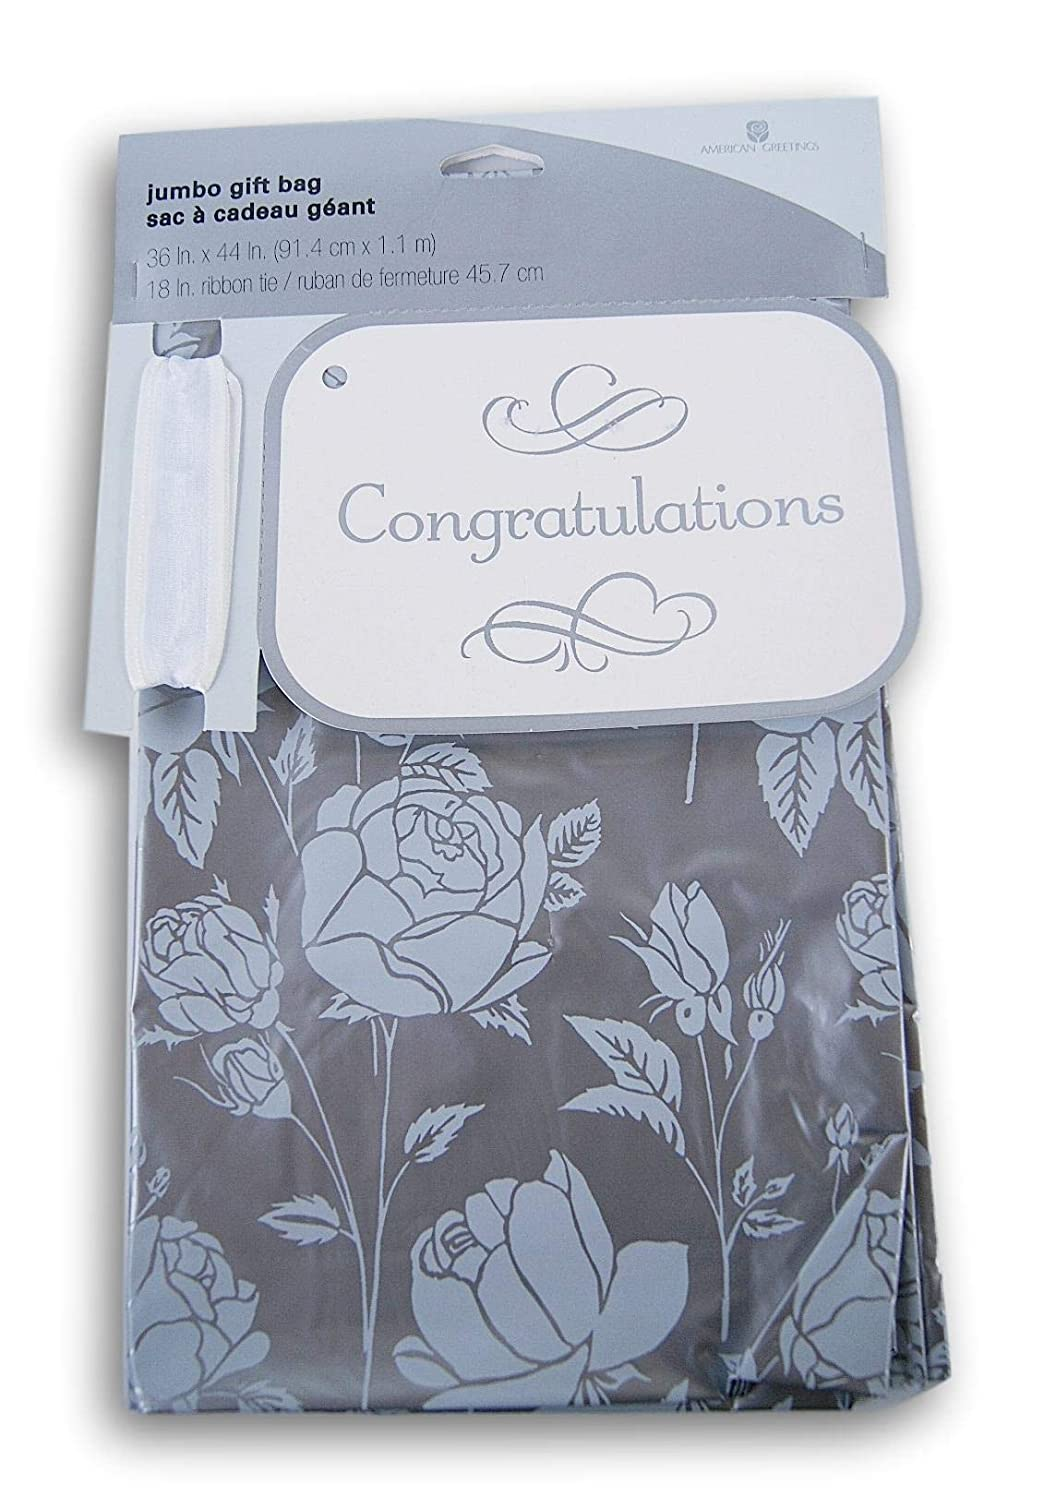 Congratulations Oversize Plastic Gift Bag with Tag and Ribbon Tie - Silver Roses- 36 x 44 Inches